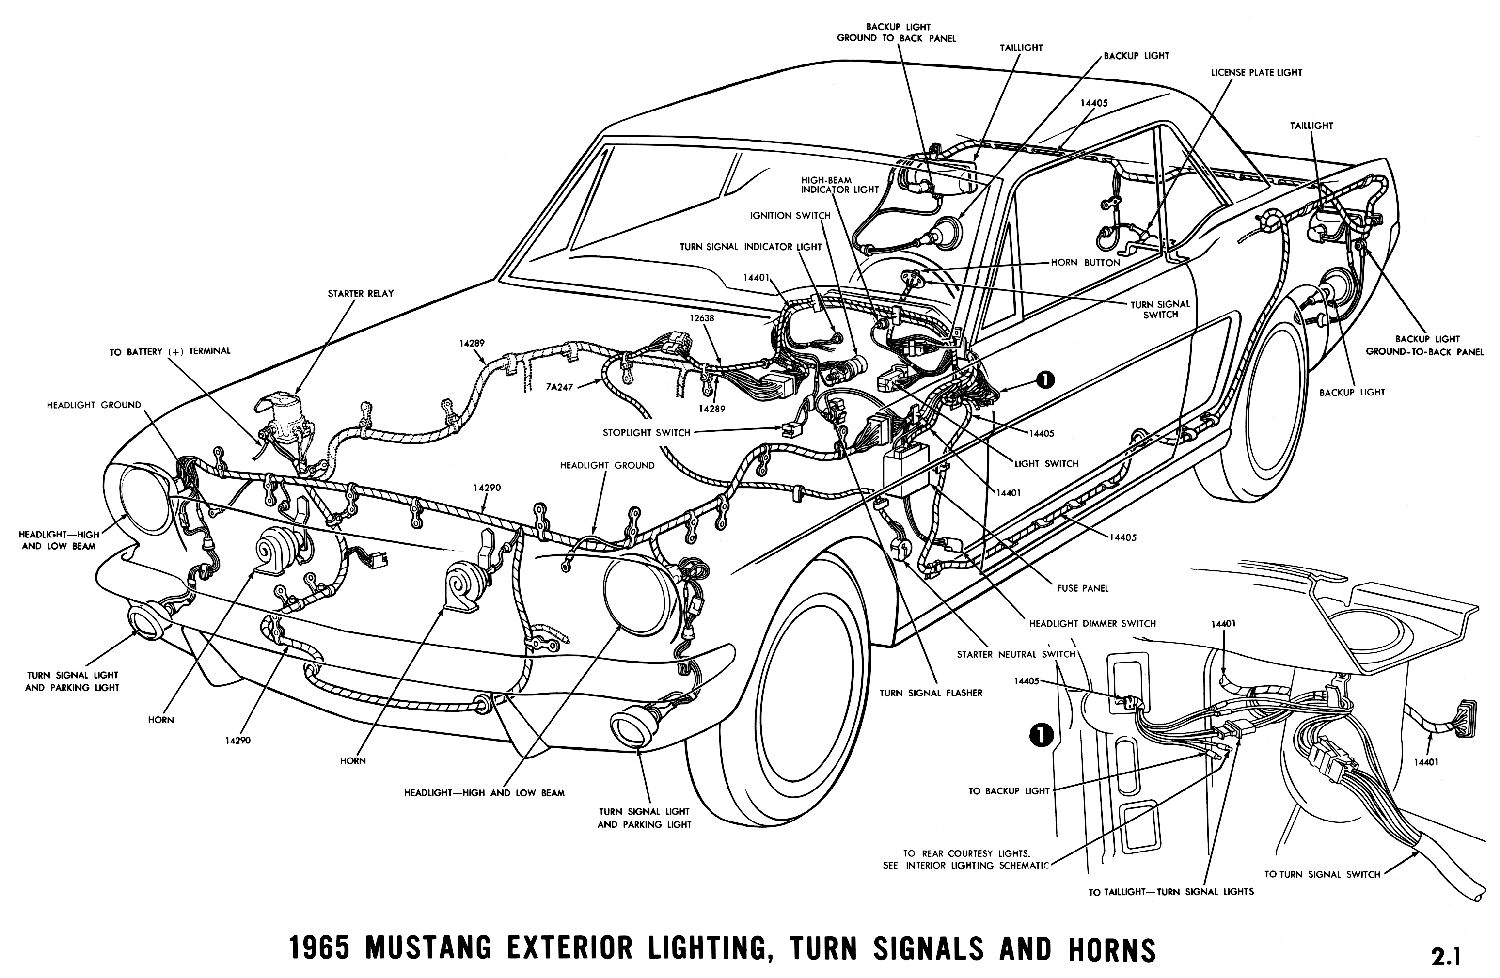 1965 Mustang Wiring Diagrams on 1975 cadillac wiring diagram